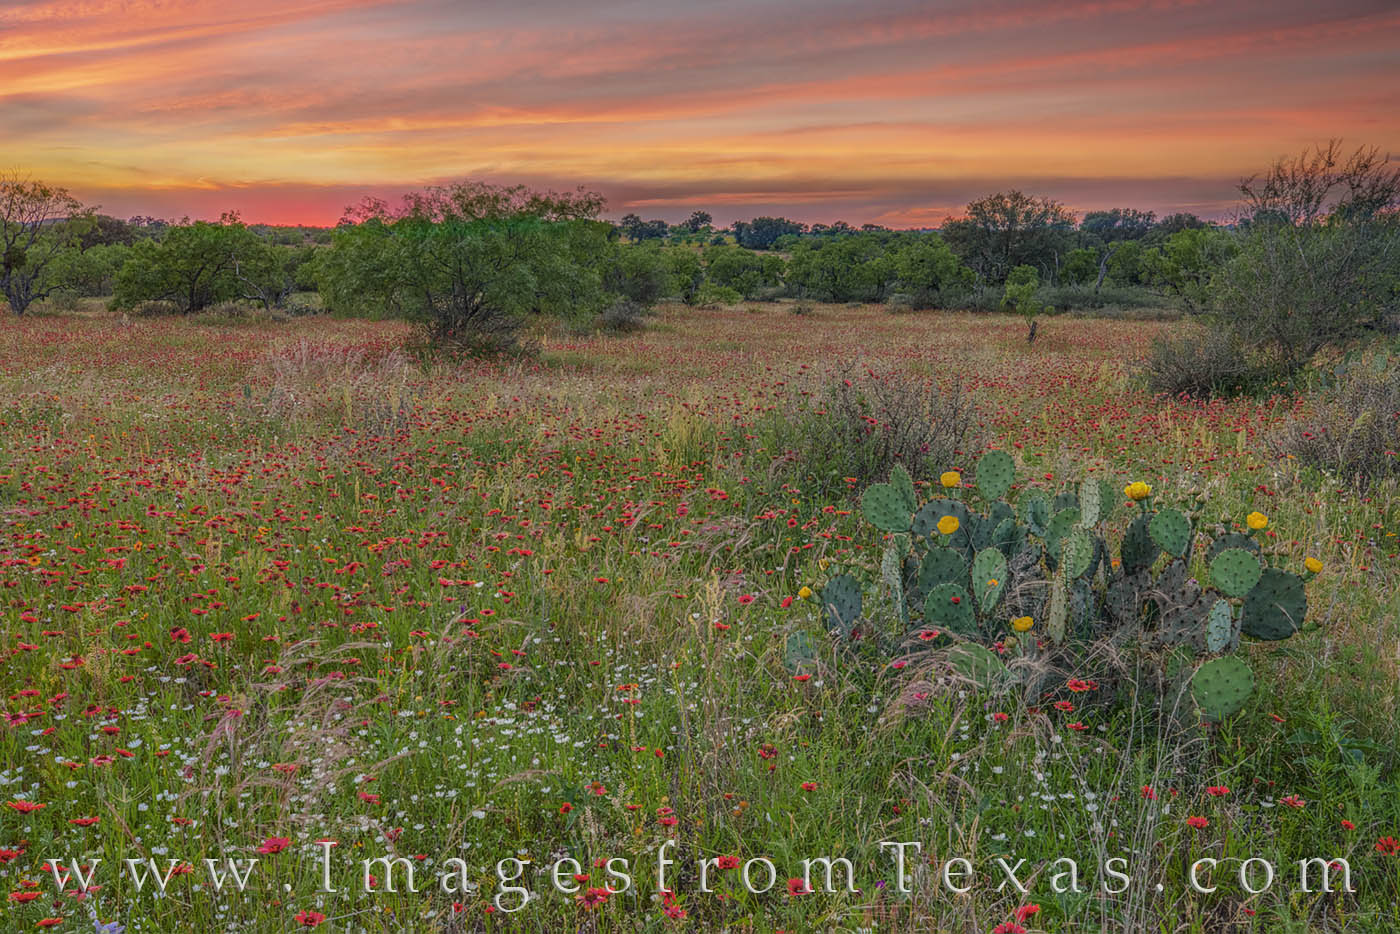 wildflowers, hill country, sunset, indian blankets, firewheels, prickly pear, blooms, texas landscapes, texas beauty, photo